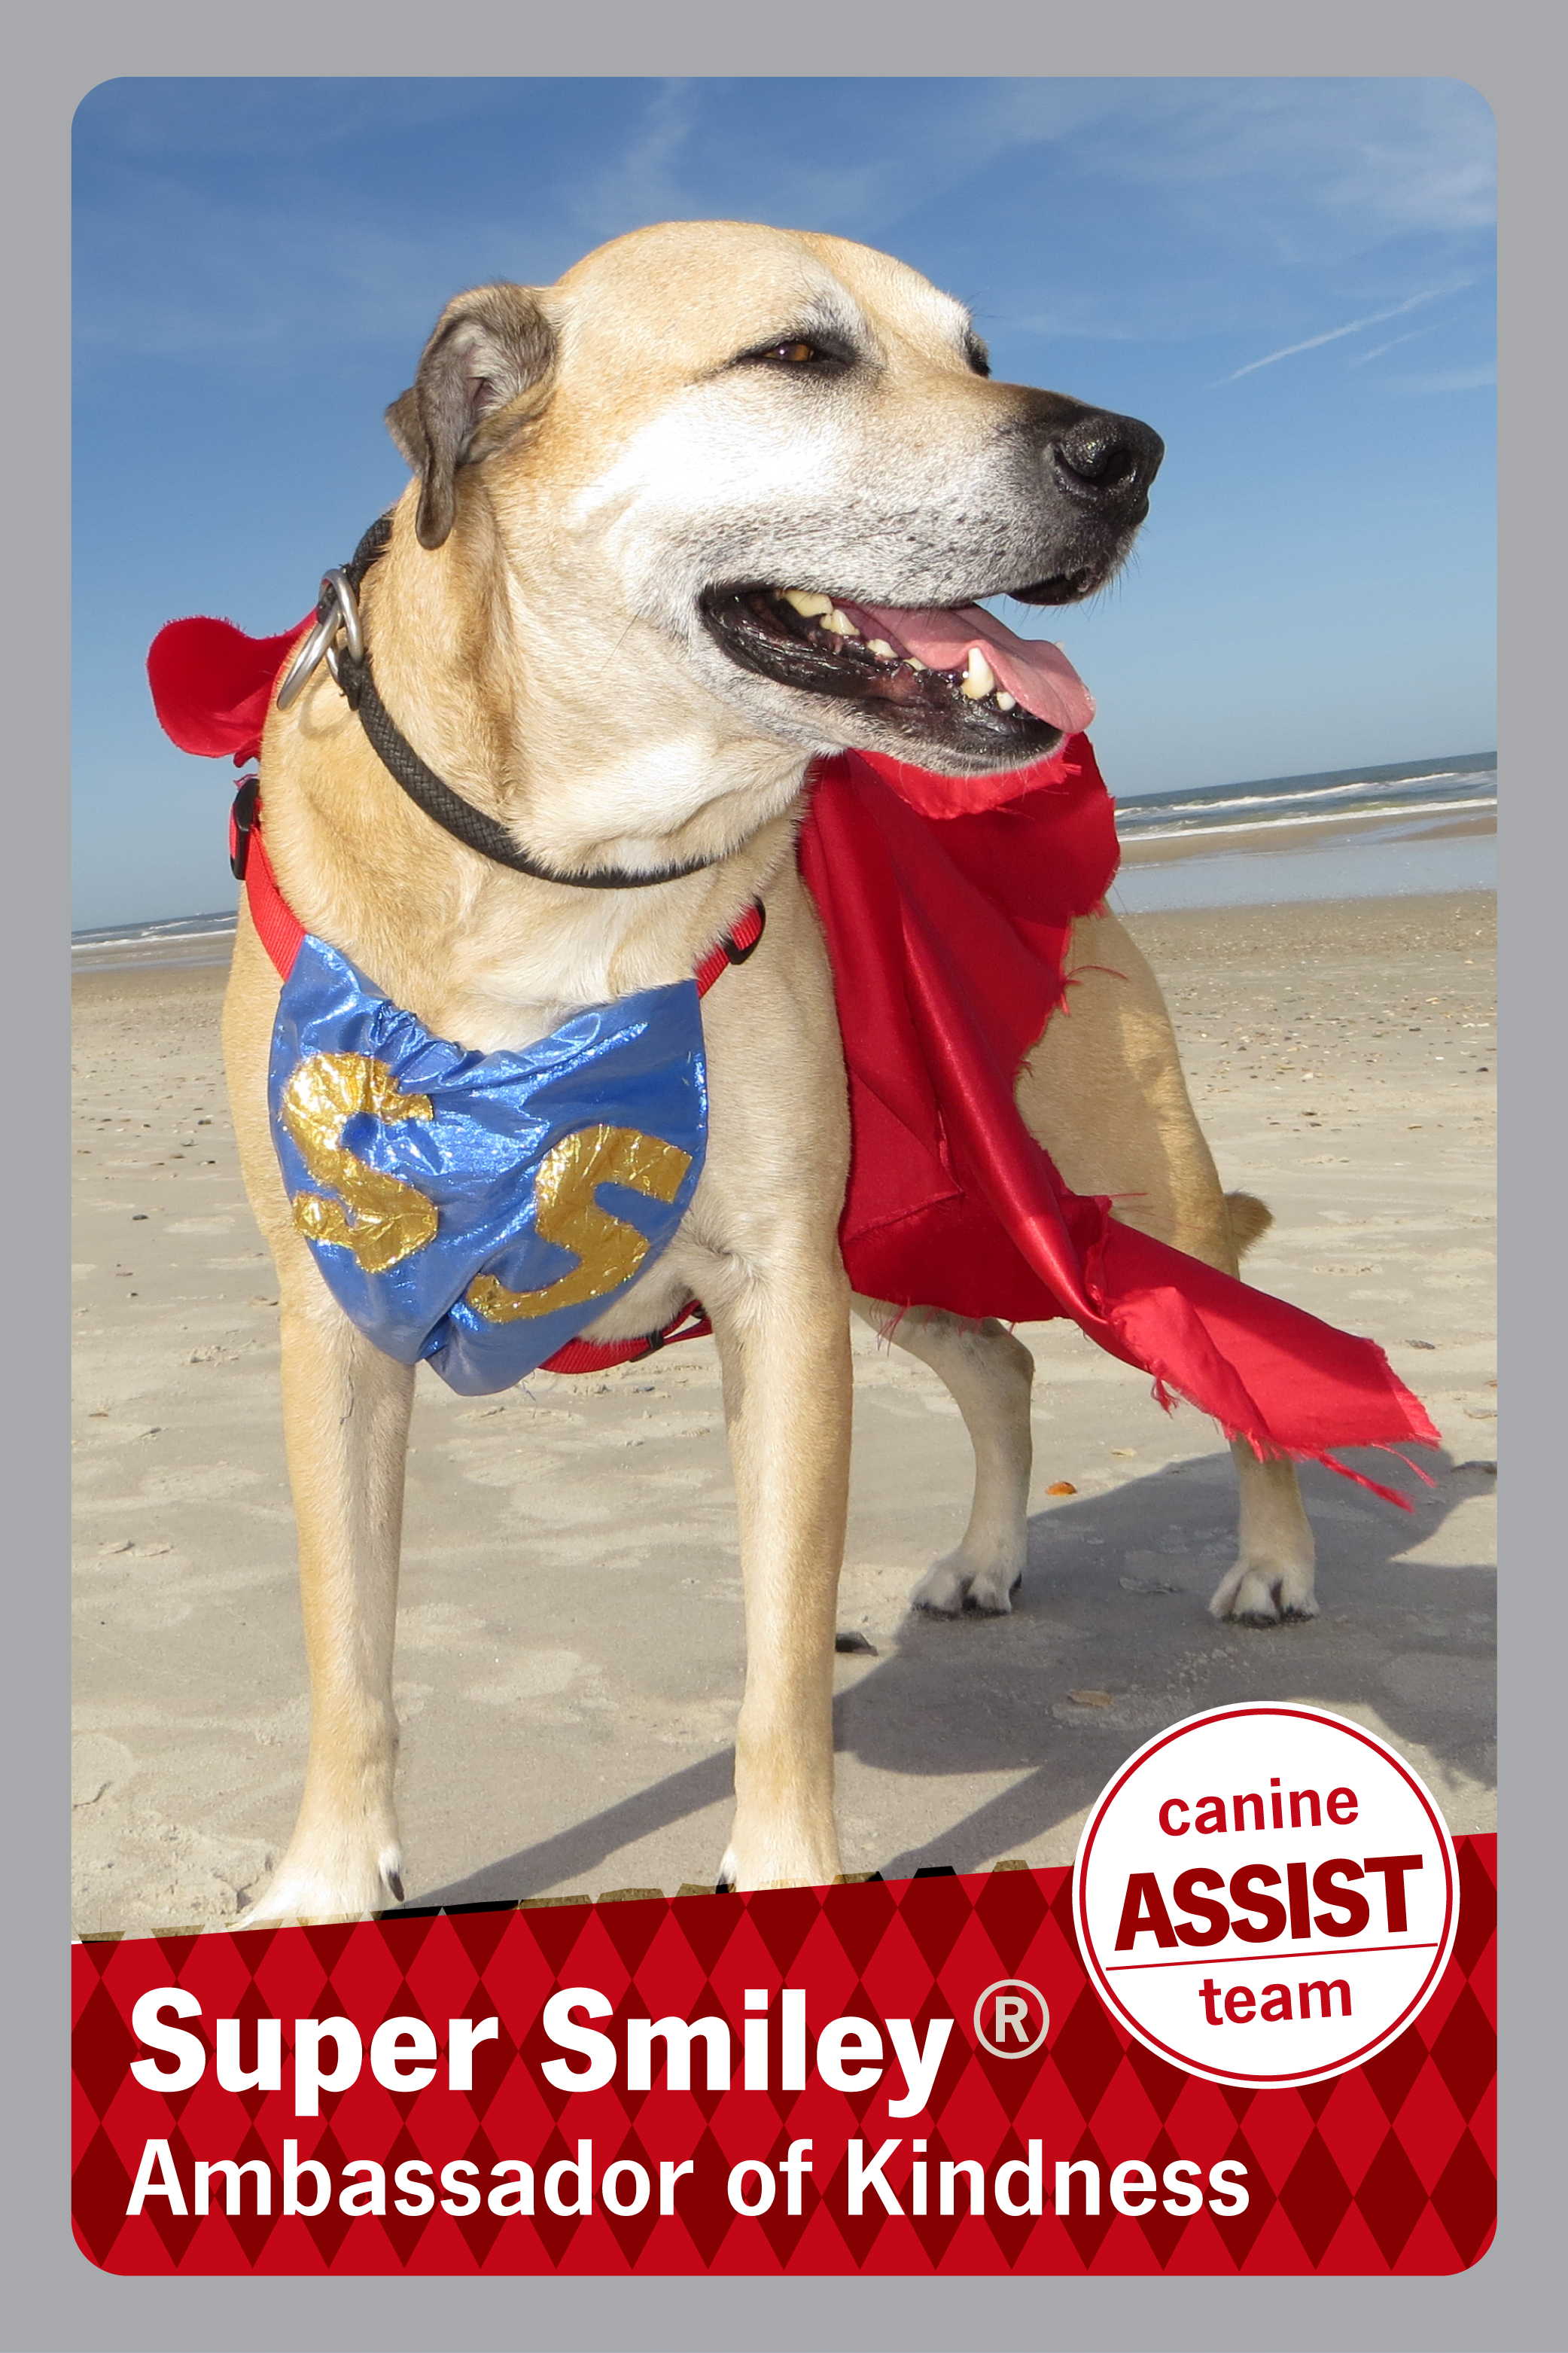 Picture of a dog with a cape on and the caption Super Smiley the ambassador of kindness